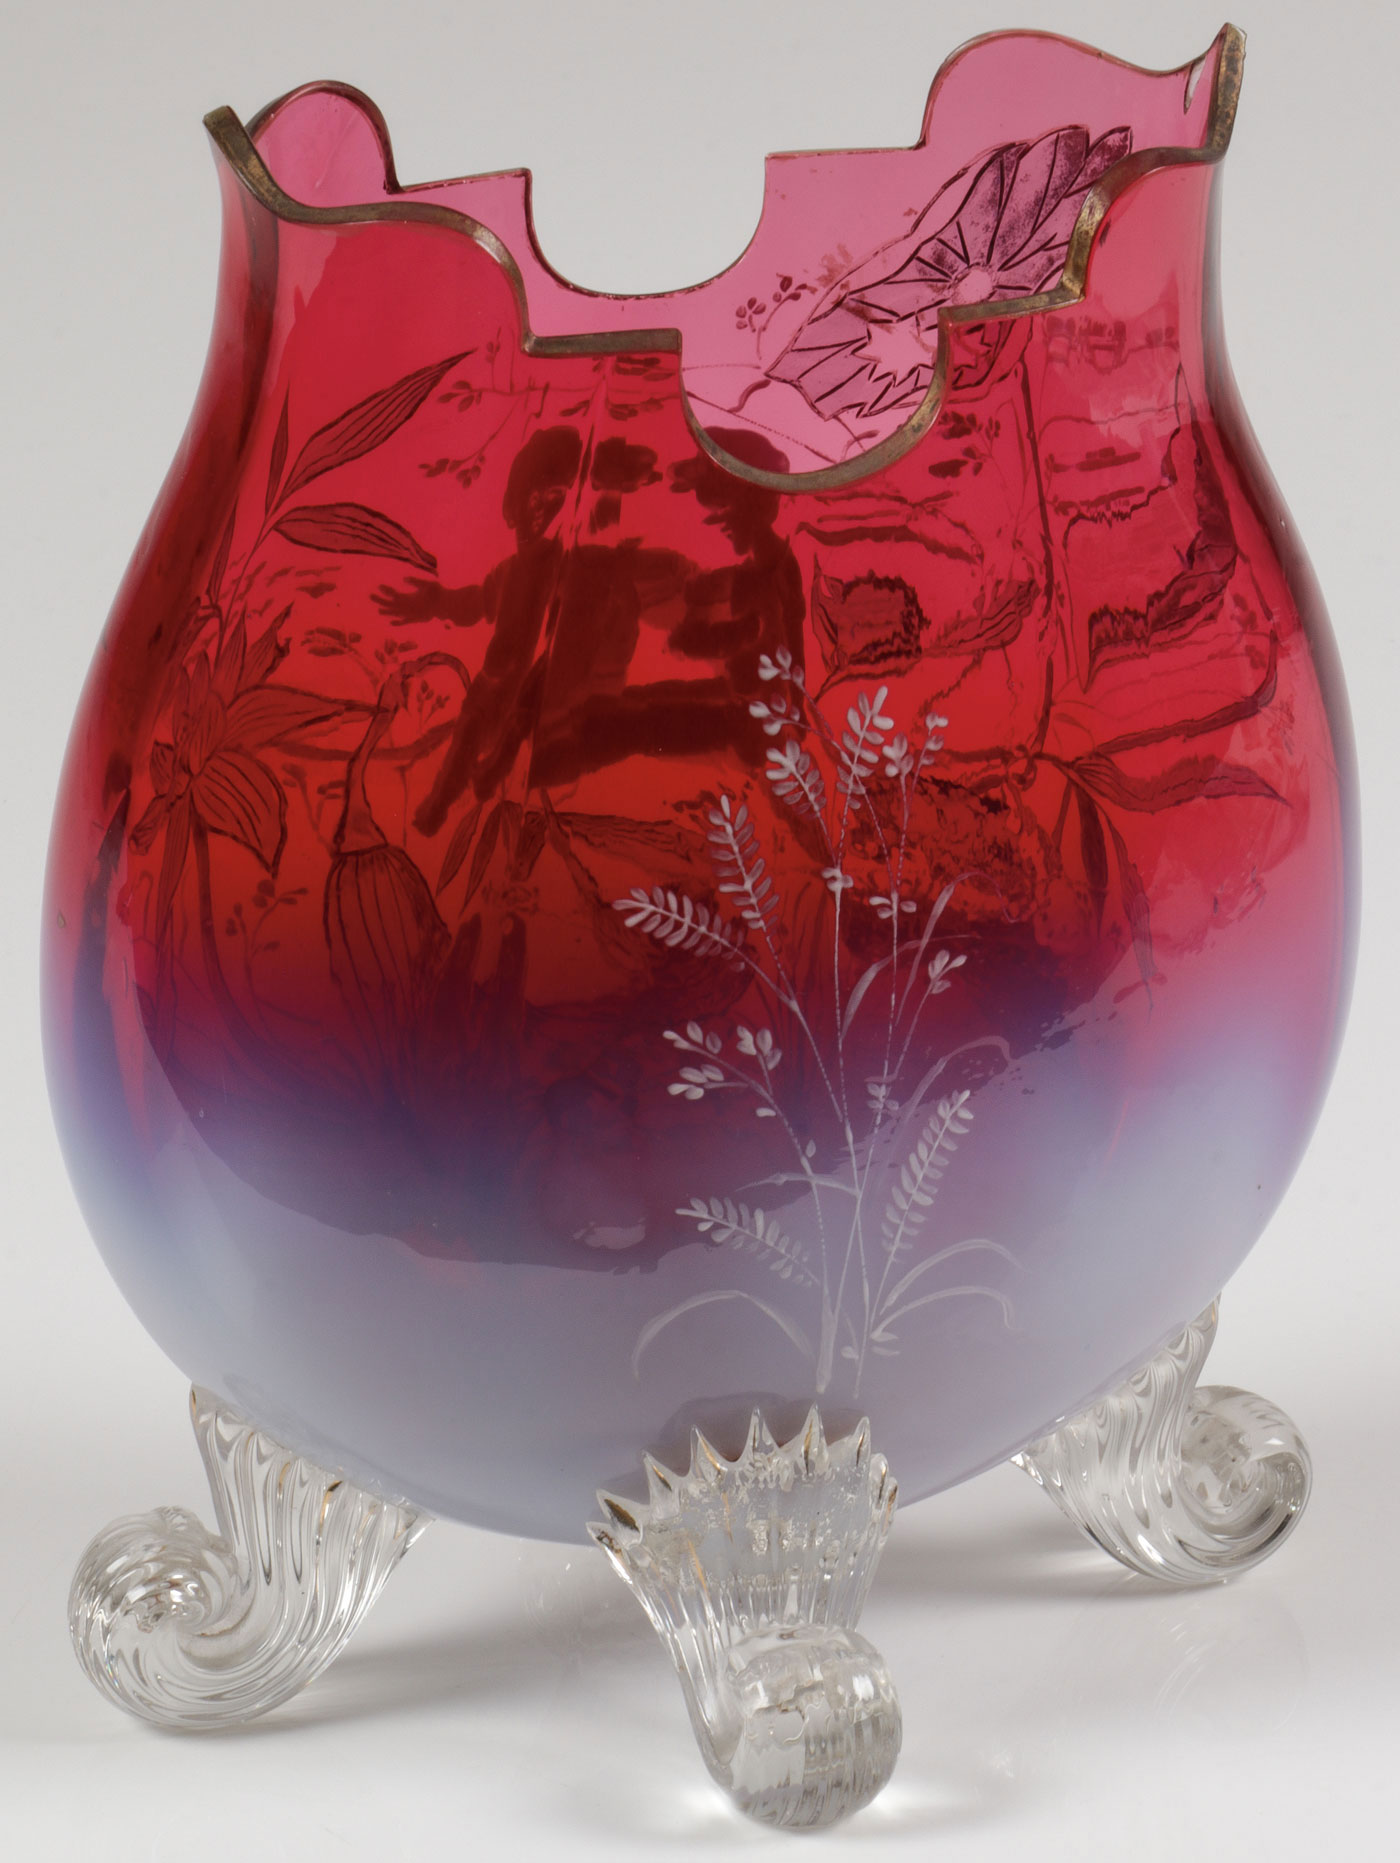 Lot 2 - AN EXCEPTIONAL MARY GREGORY FOOTED PILLOW VASE, C